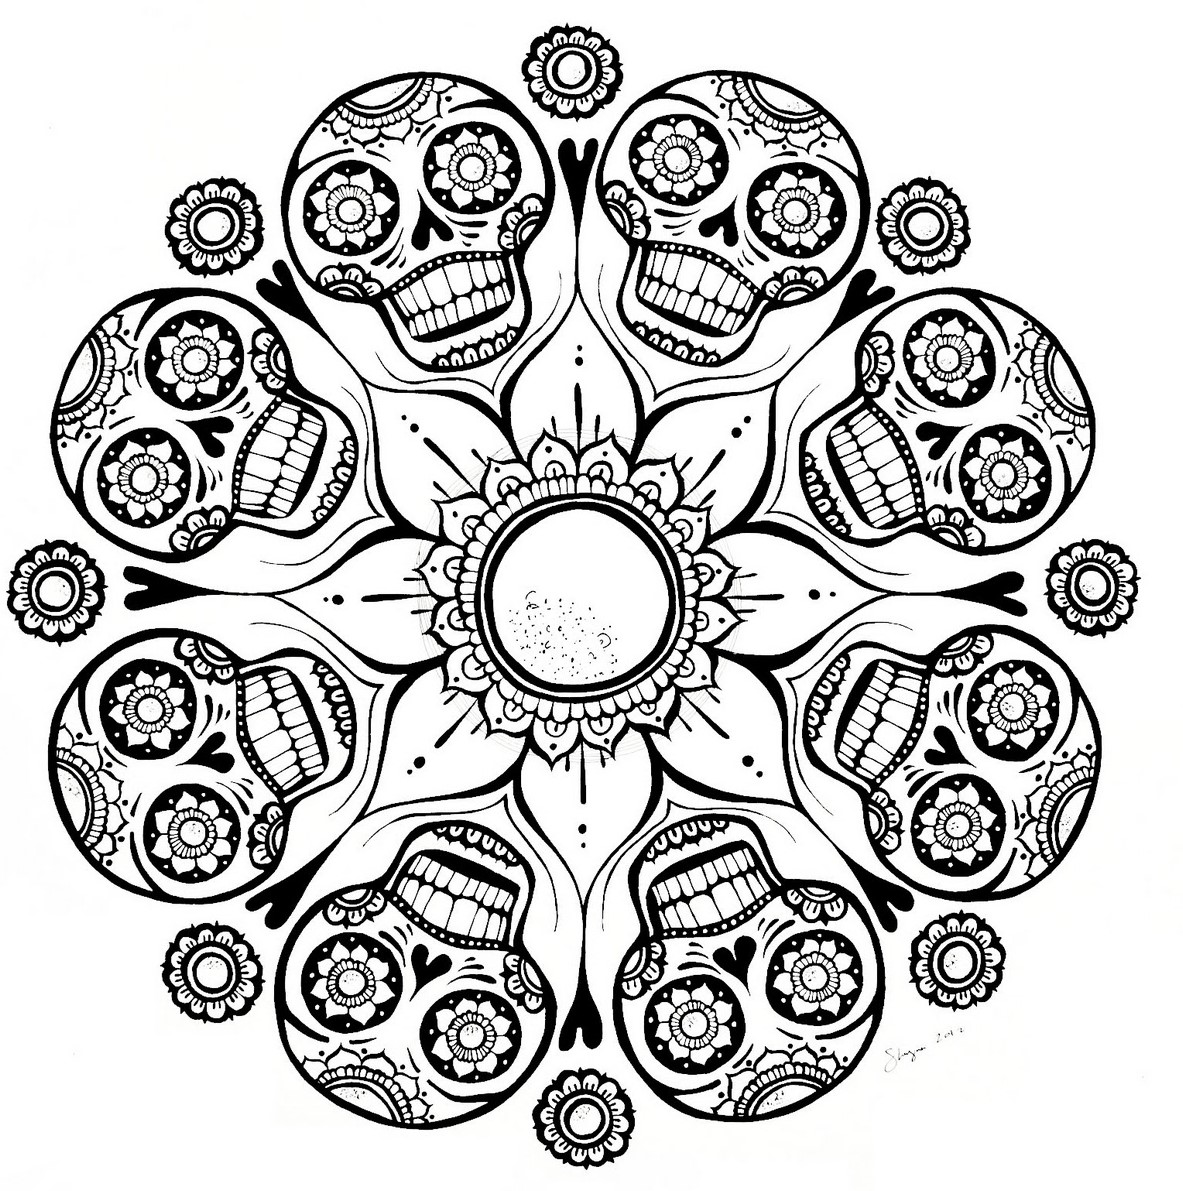 Skull and Flower Mandala Coloring Page for Adults